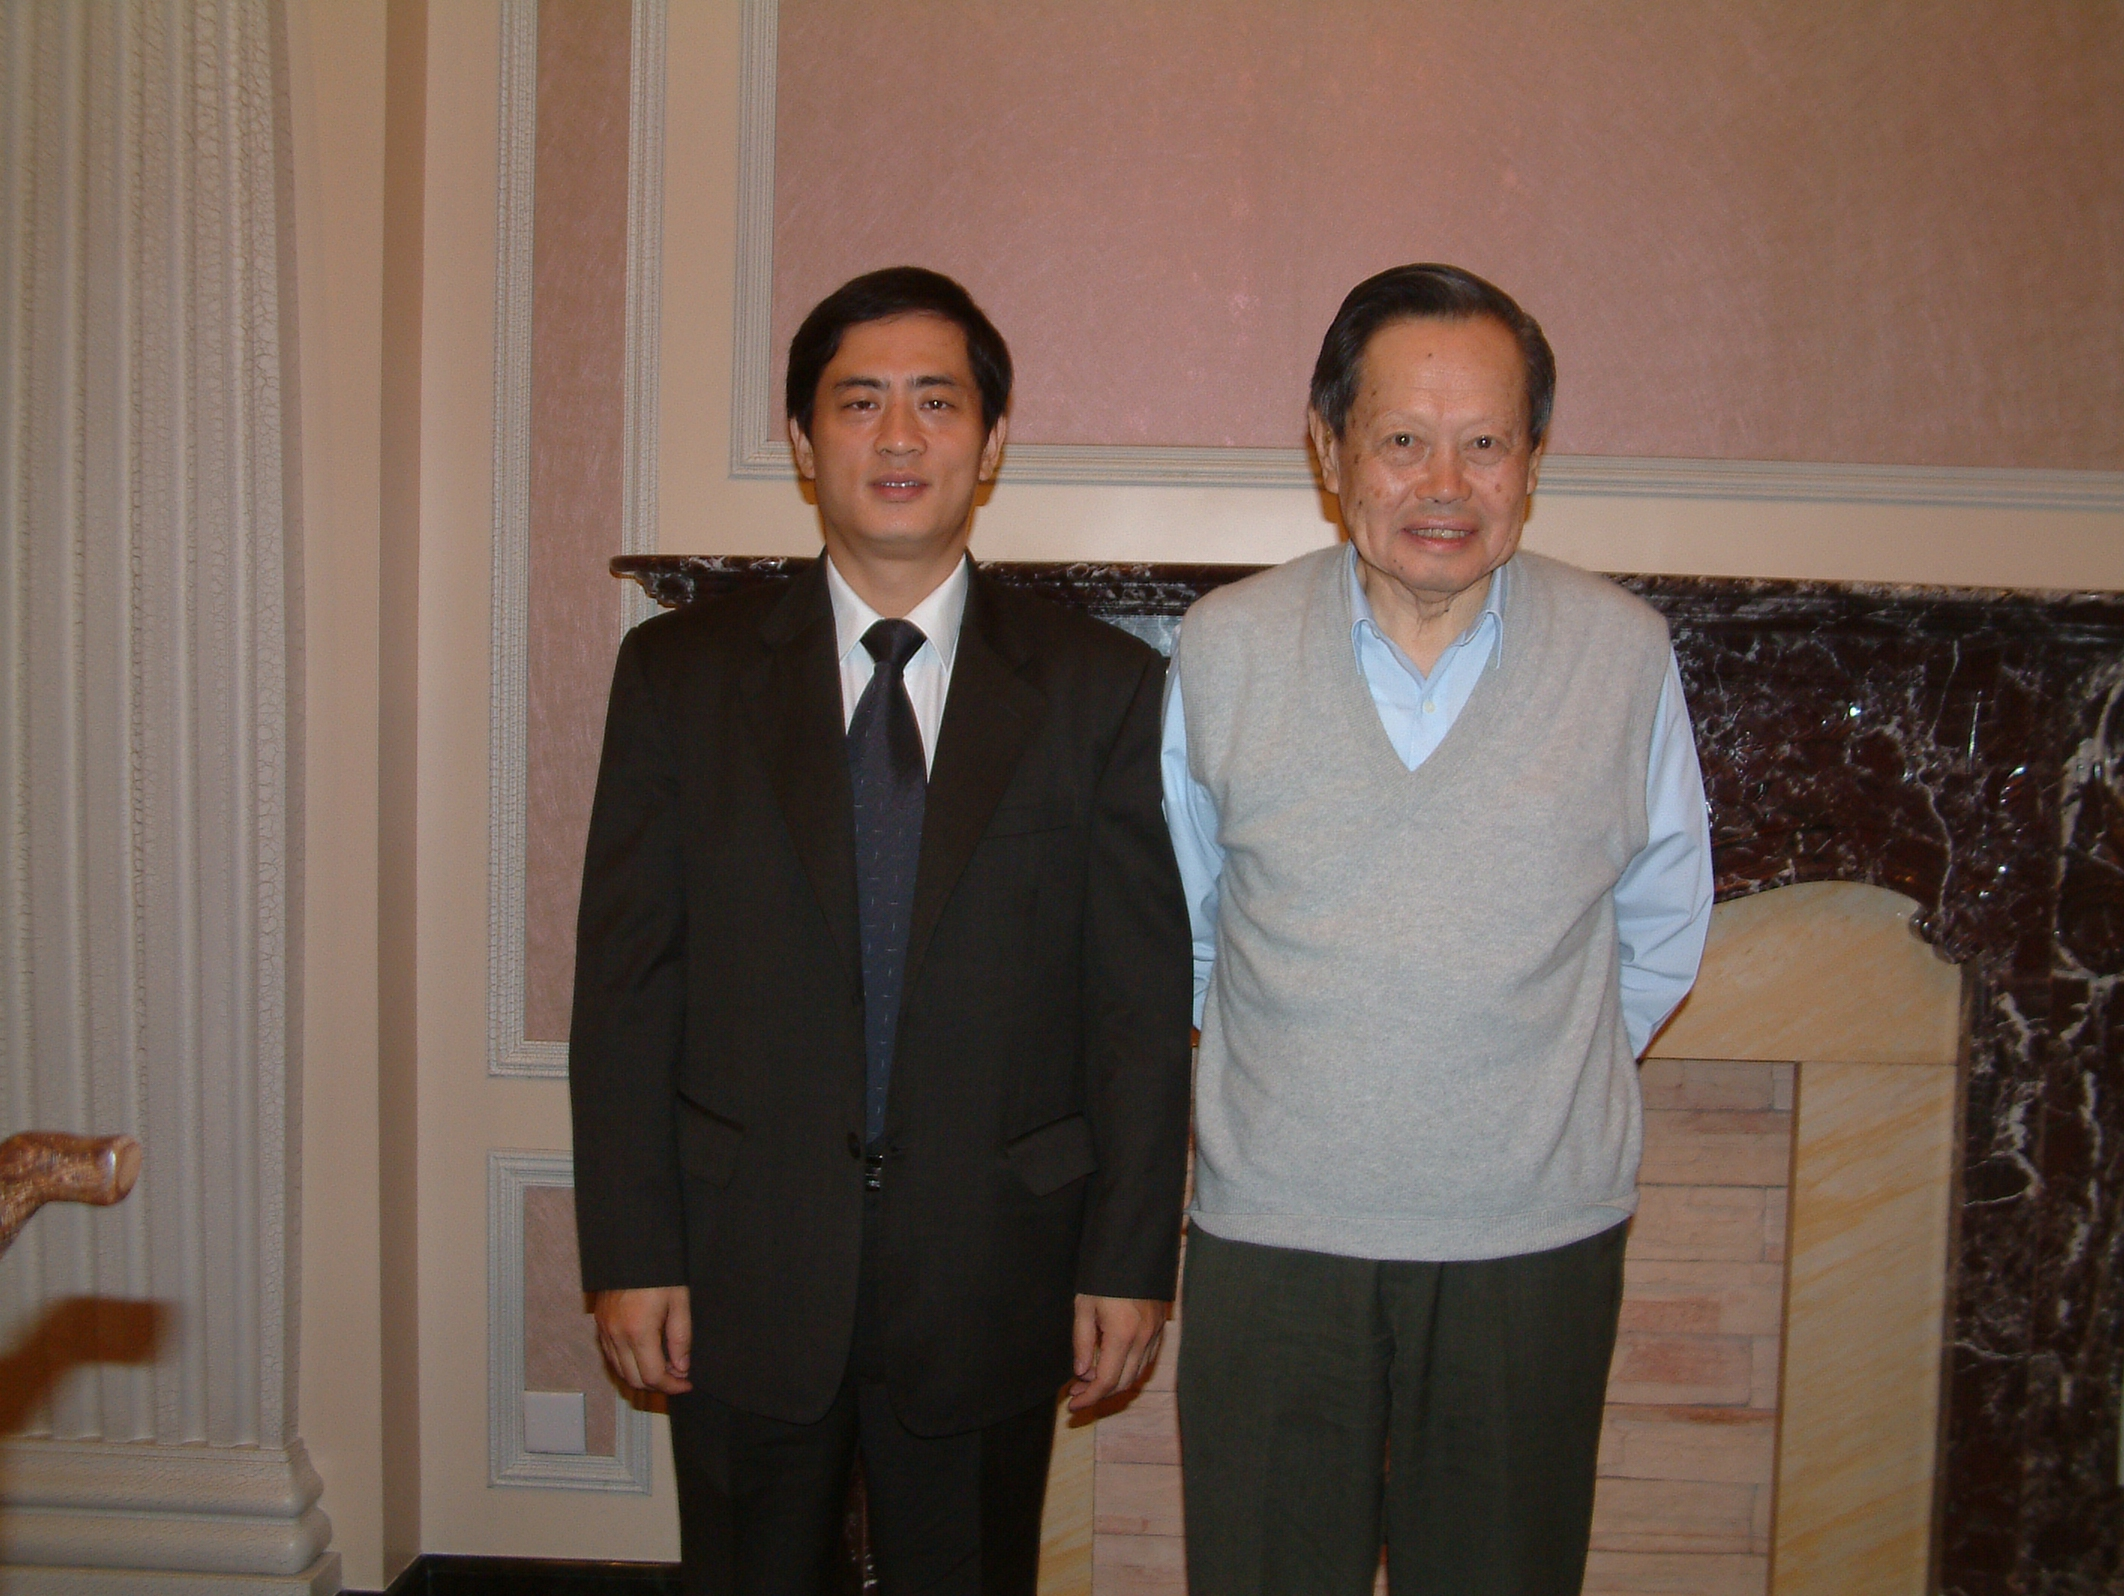 A photo with poet Zhenning Yang